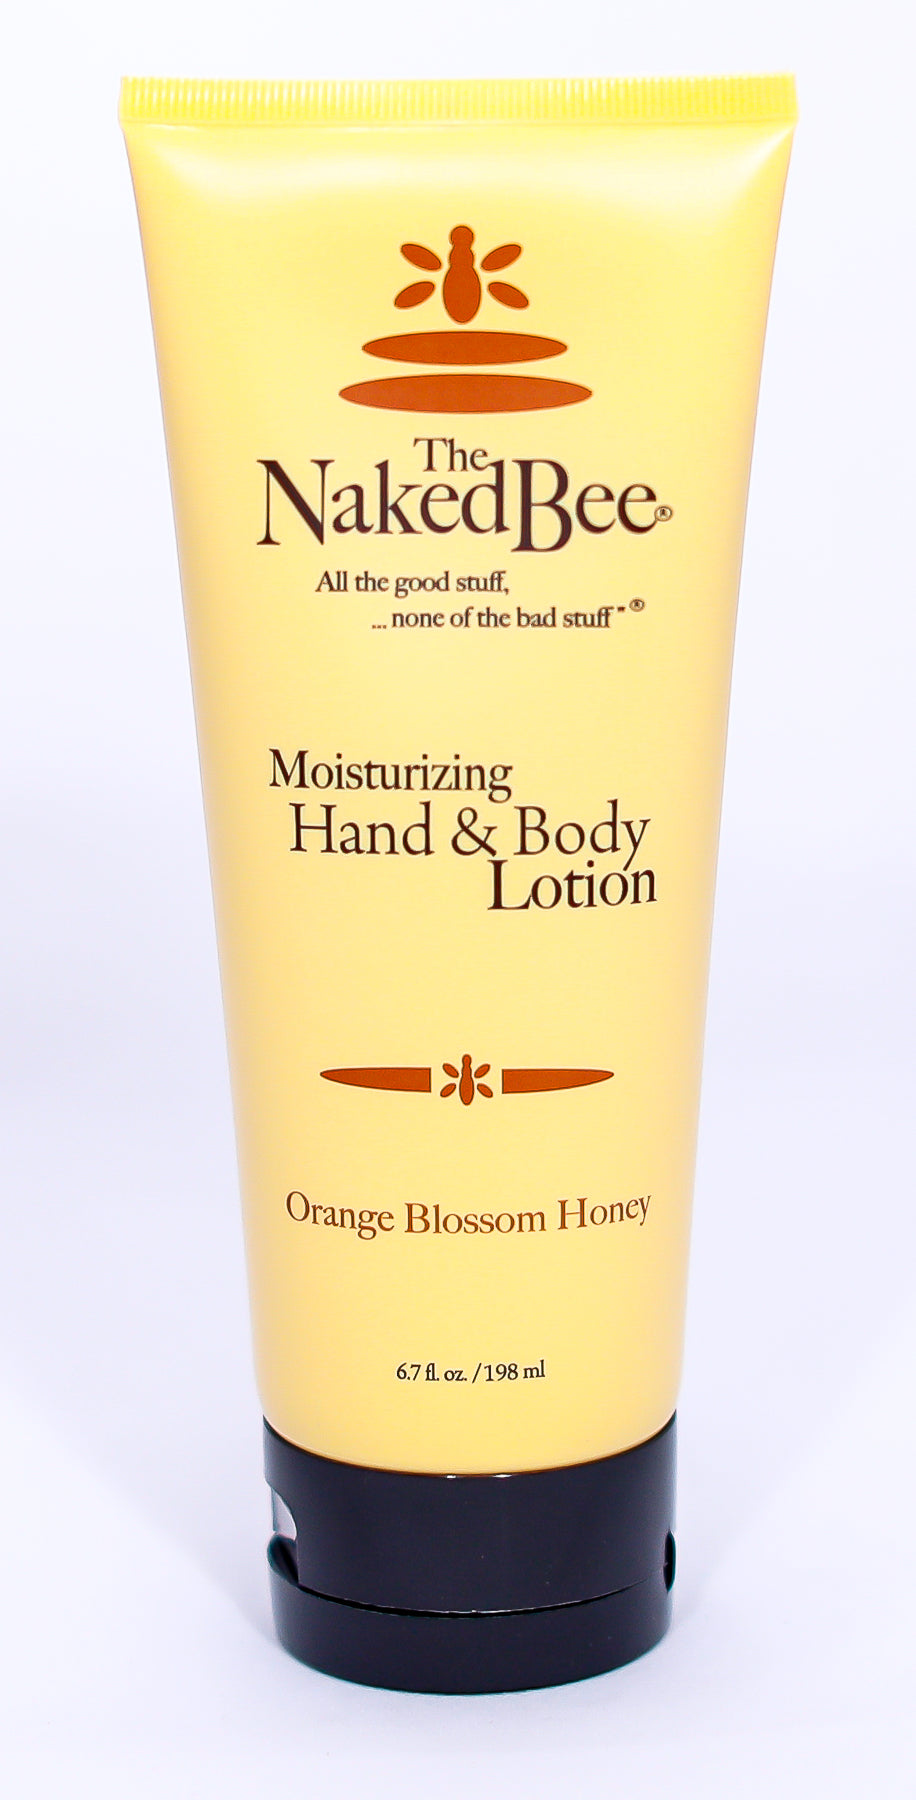 Large Moisturizing Hand & Body Lotion by the Naked Bee - Pharm Favorites by Economy Pharmacy